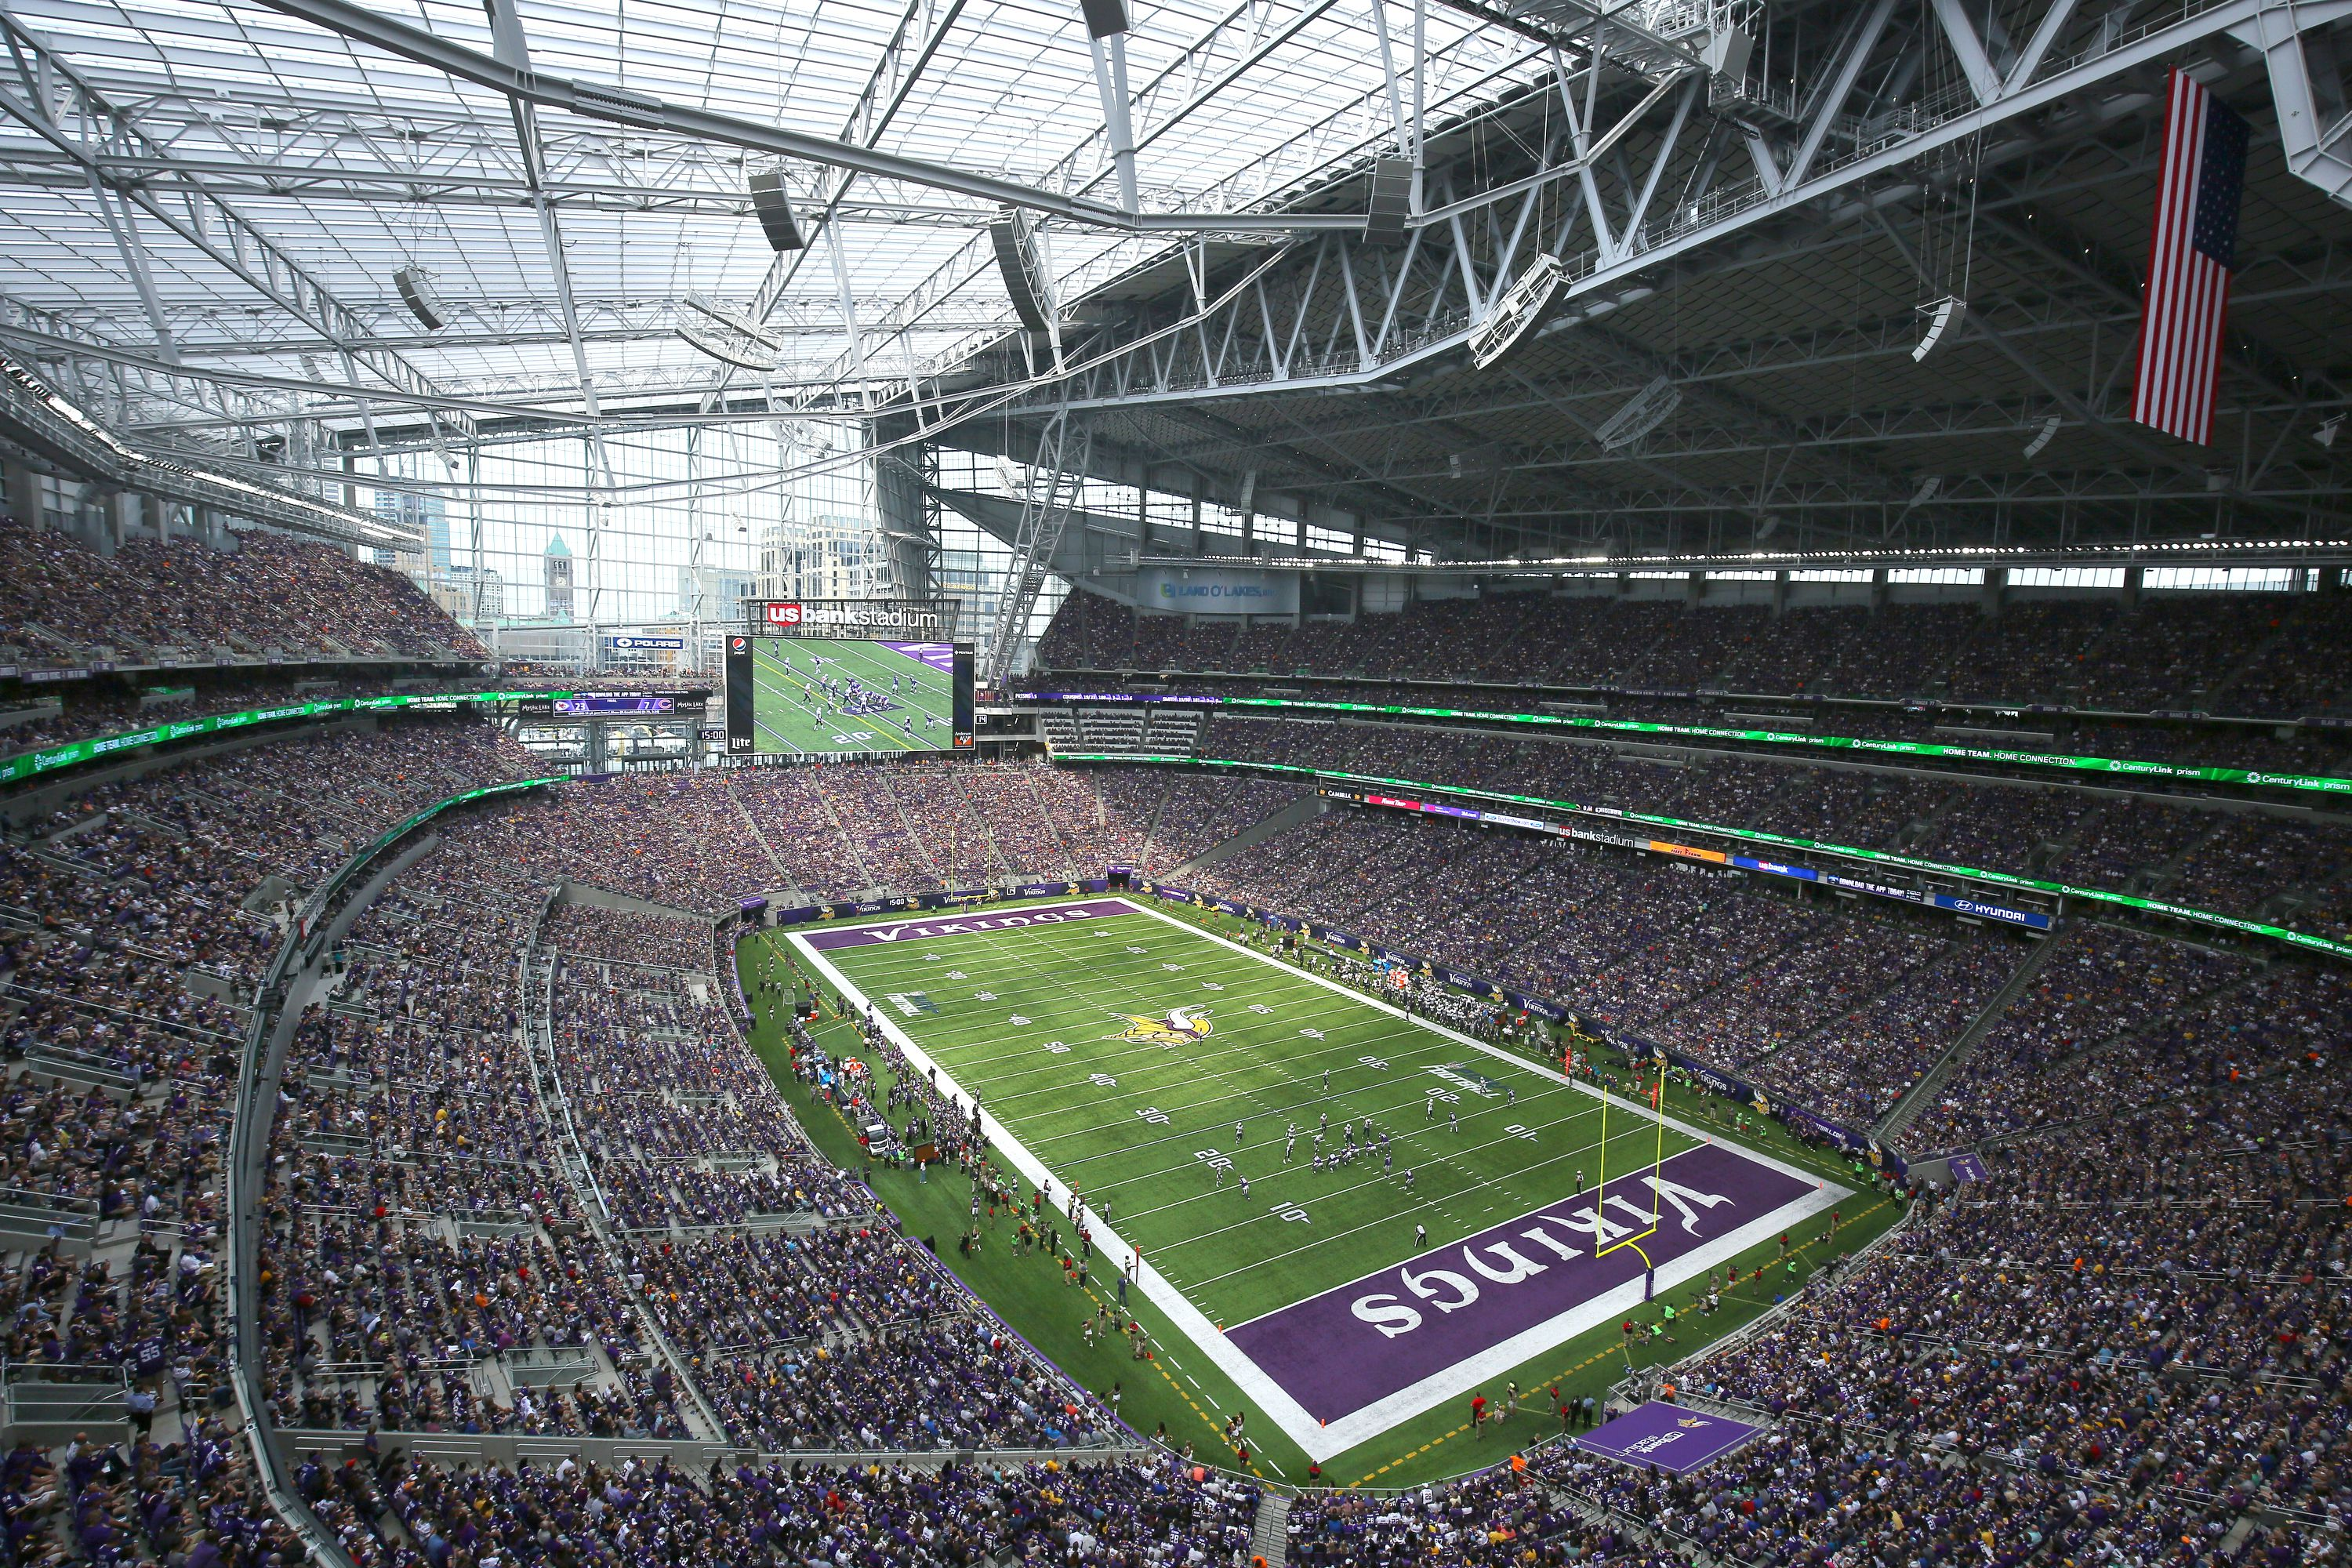 Inside photo of US Bank Stadium, built in 2016 in Minneapolis, Minnesota, with a high-tech ETFE polymer roof that looks like glass panels